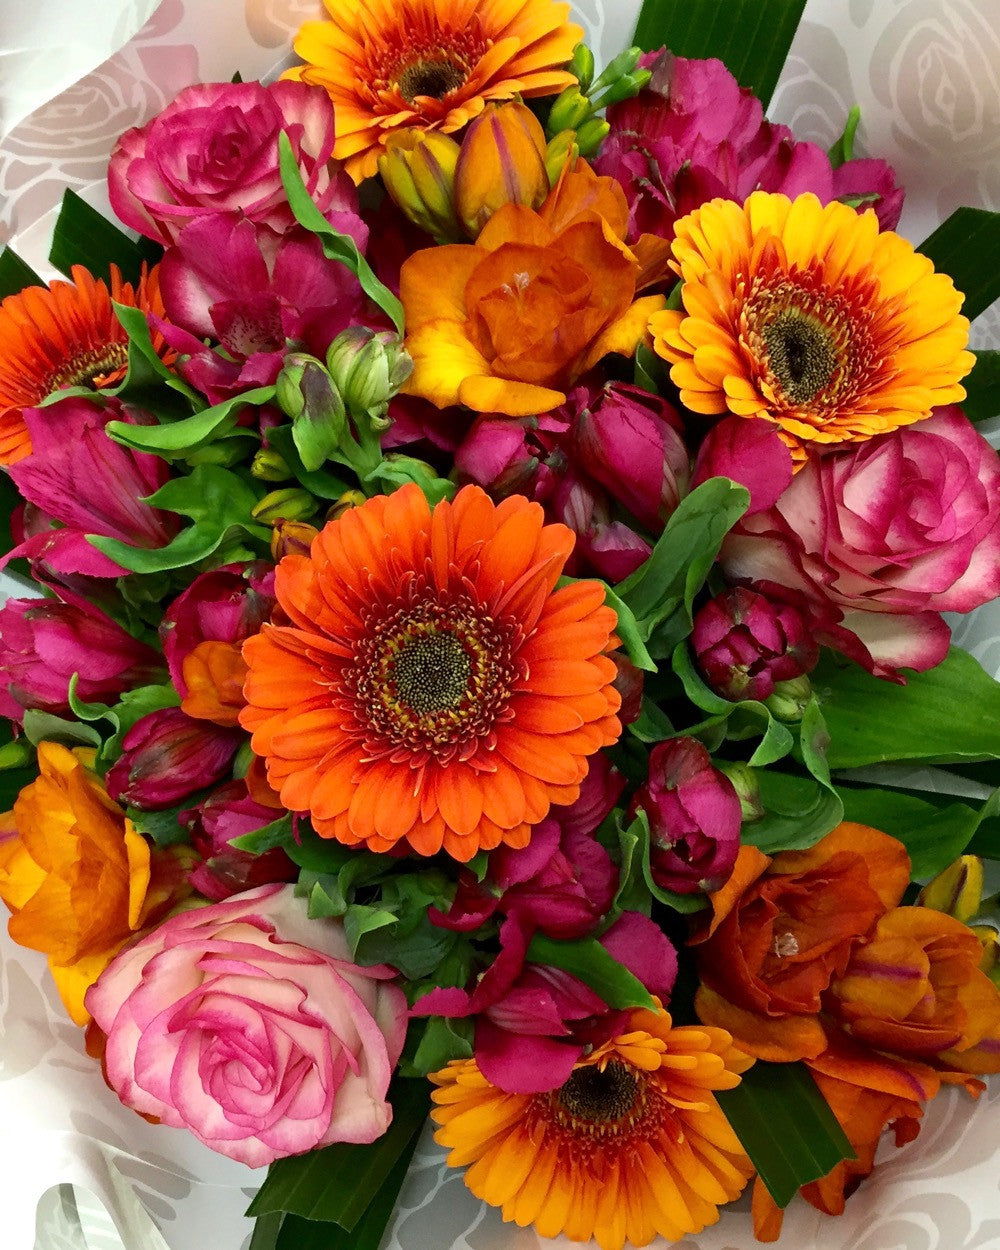 Spring Flowers In Winter For Delivery In Wellington New Zealand